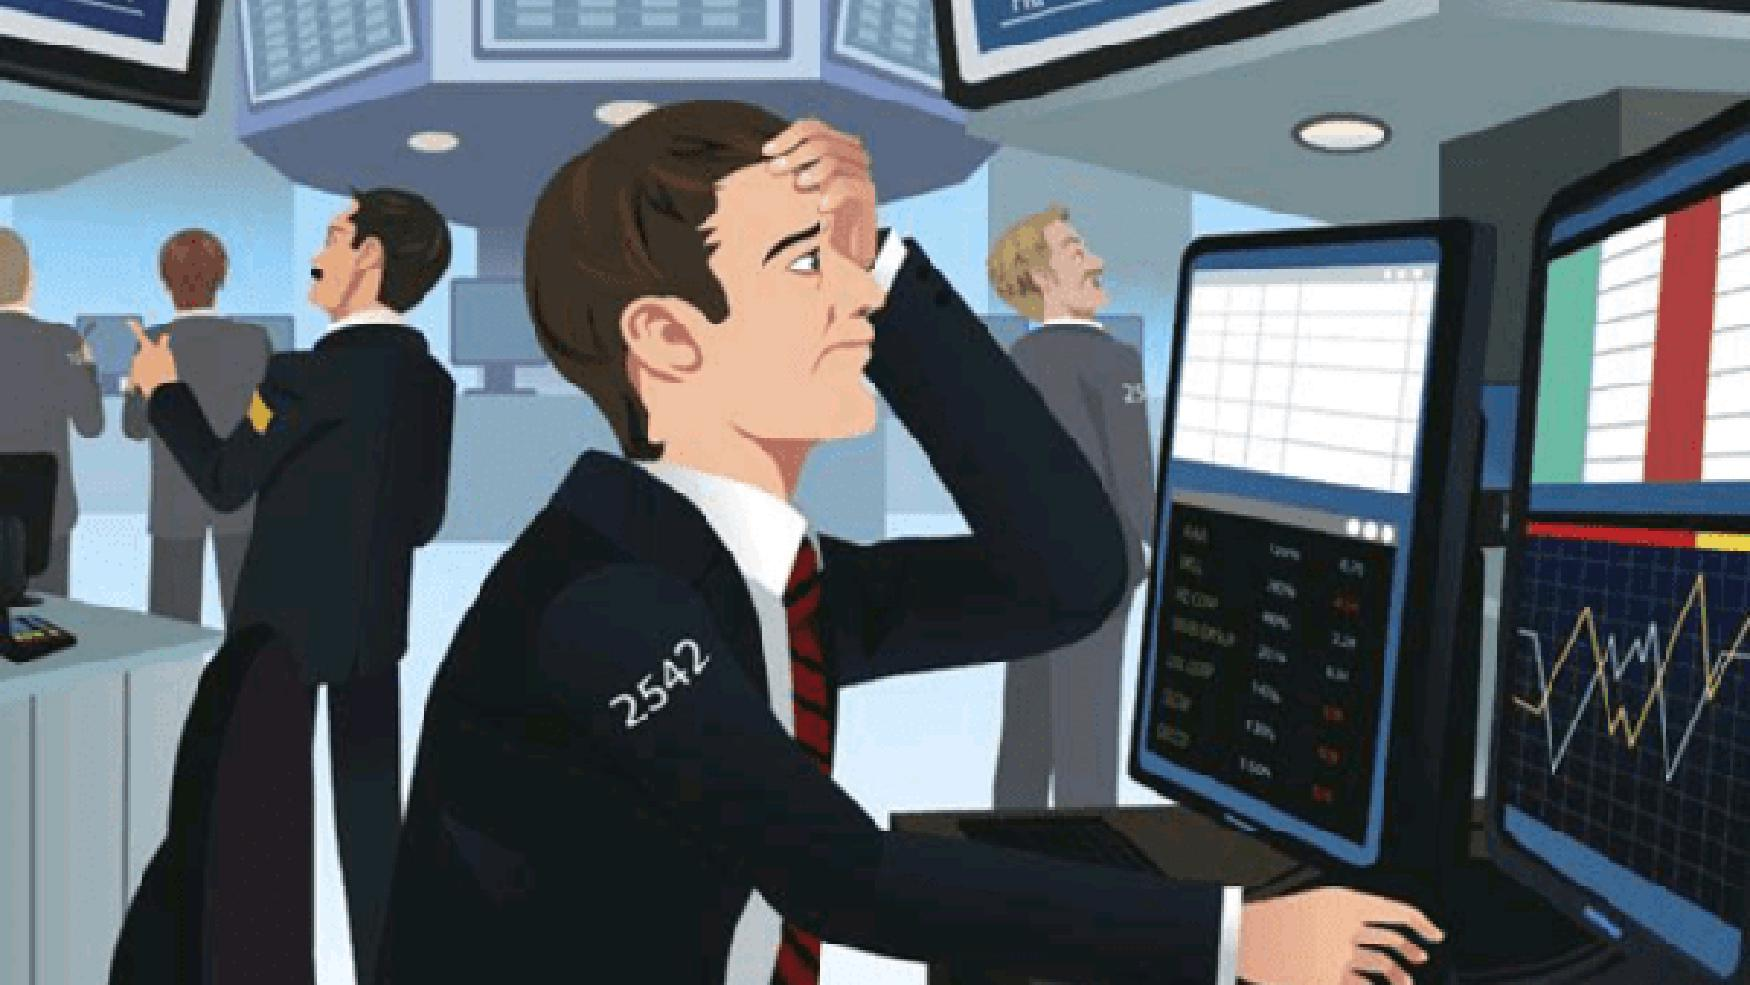 common ways lose money in the Stock Market